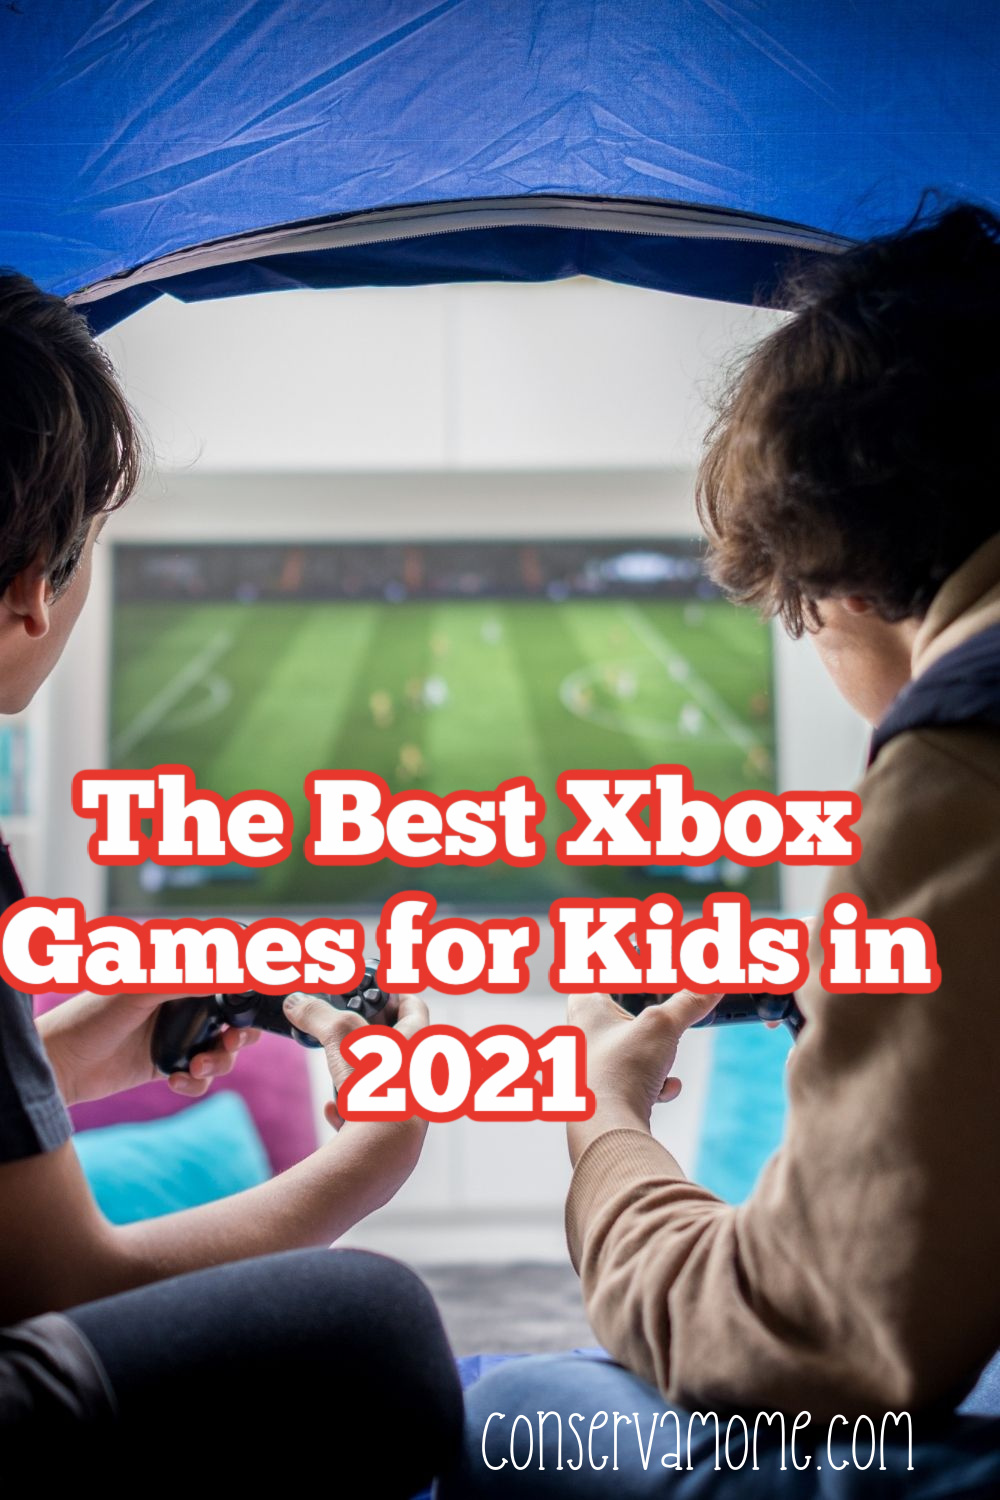 The Best Xbox Games for Kids in 2021